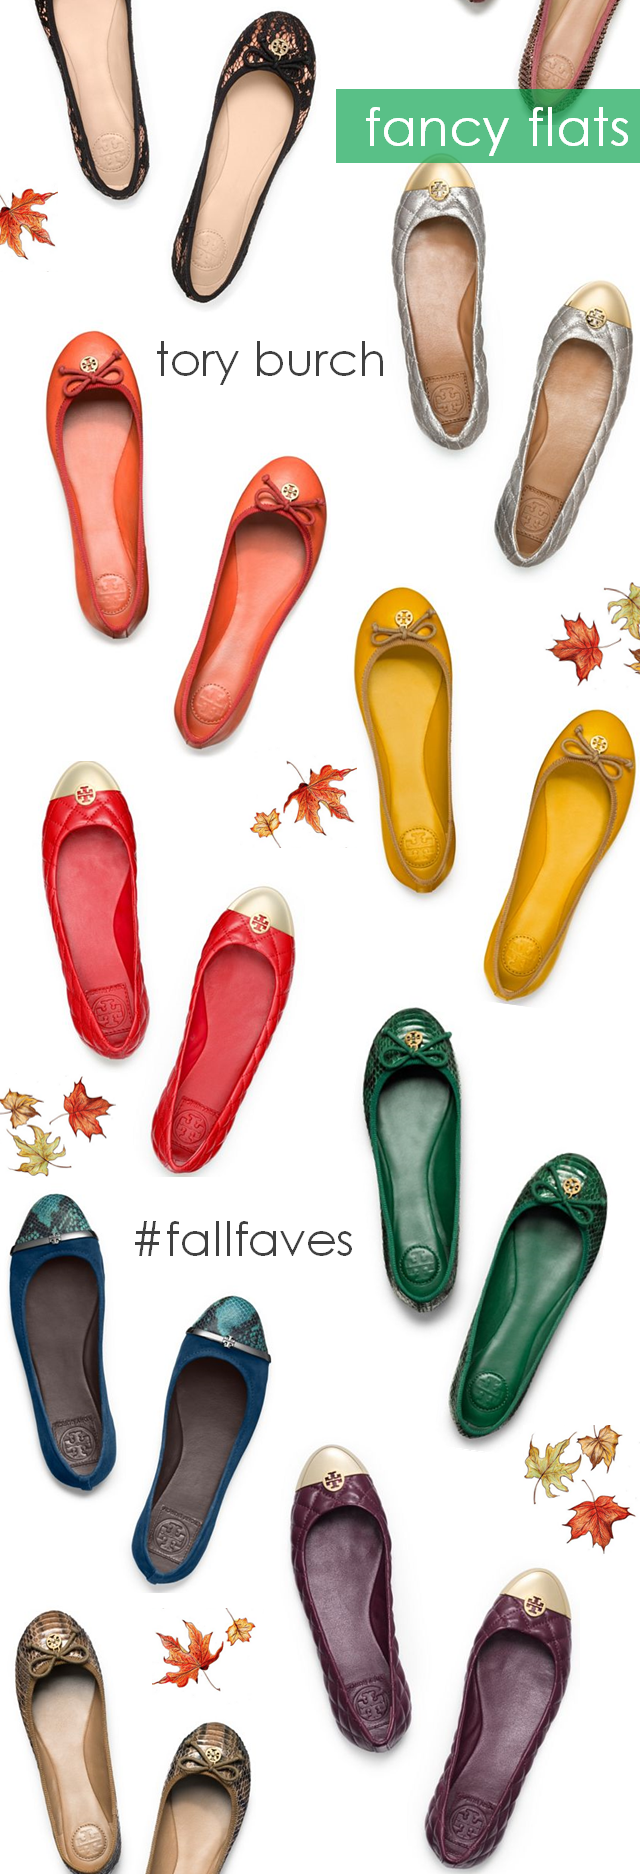 fancy flats #toryburch #fallfaves